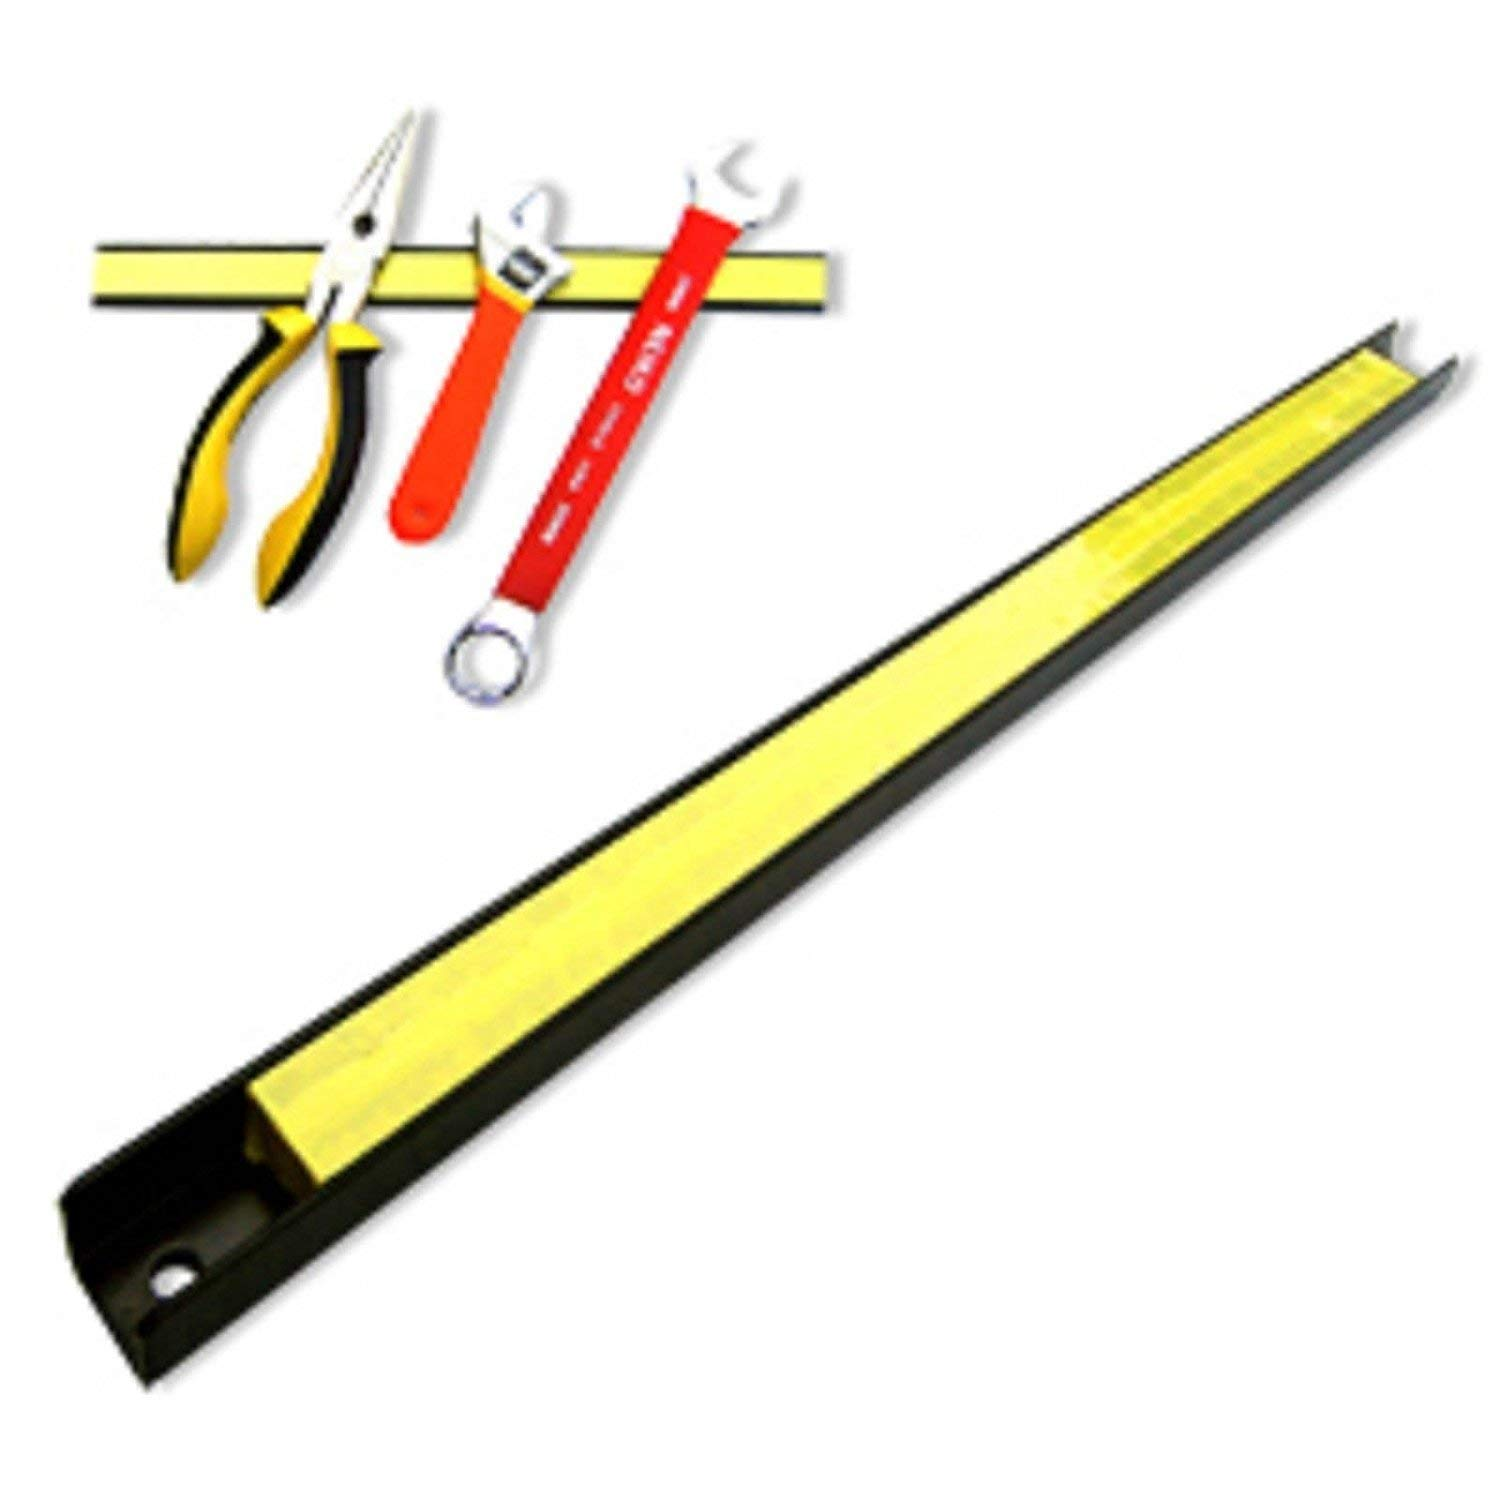 "ESKALEX>>(5) 24"" Magnetic Tool Holder Bars Magnet Mechanic Shop And 1"" WidePowder Coating50lb Capacity EACH"